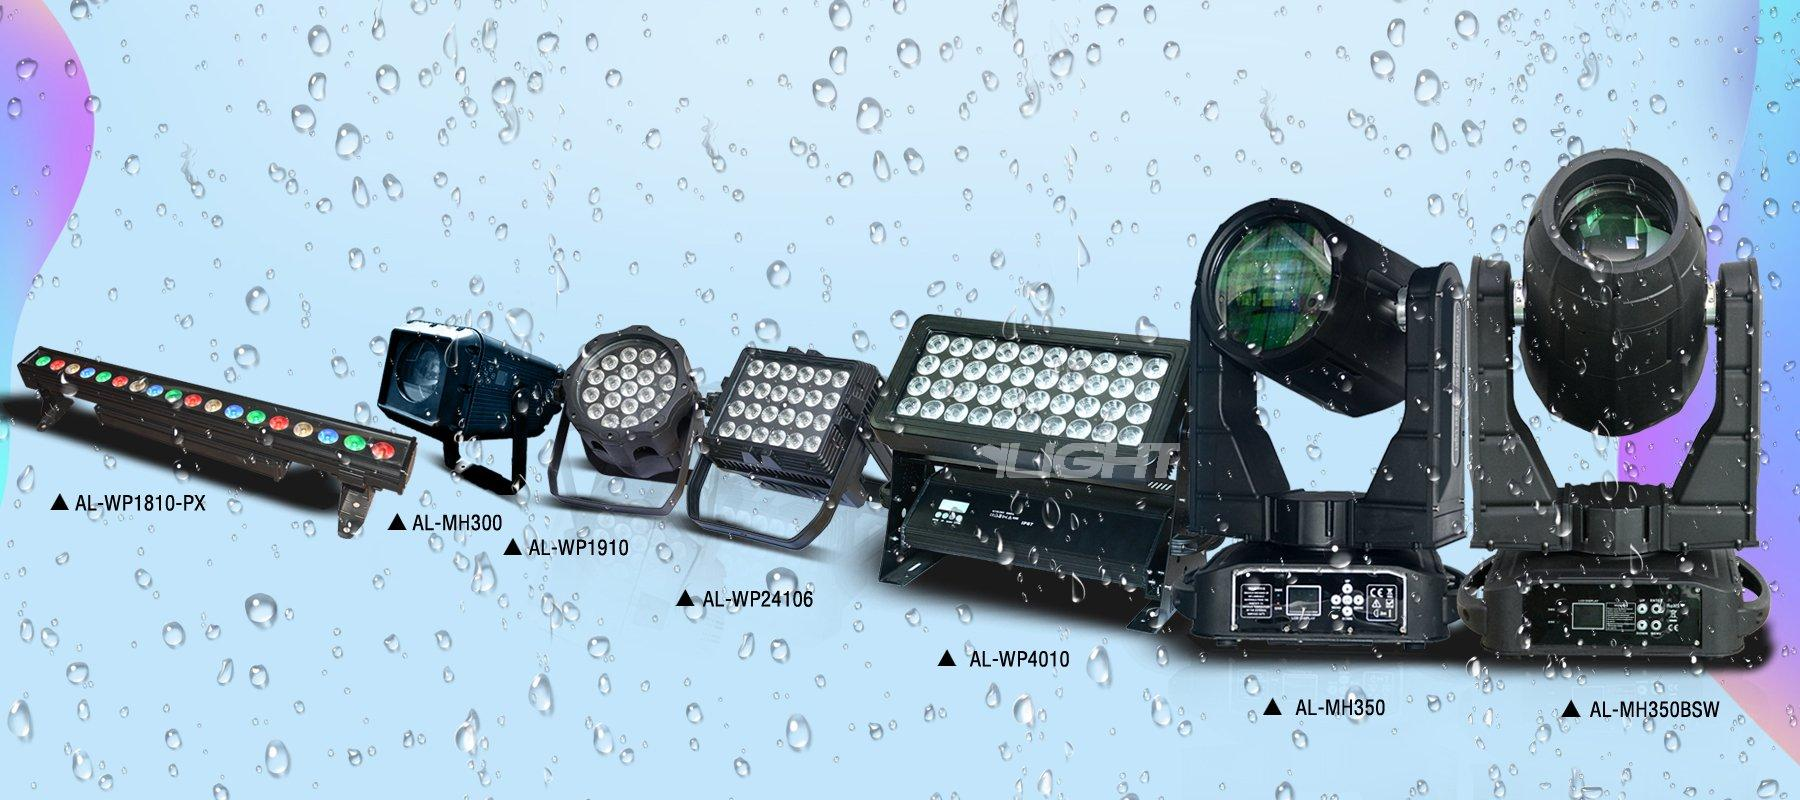 YLIGHT_Waterproof_lighting_collections